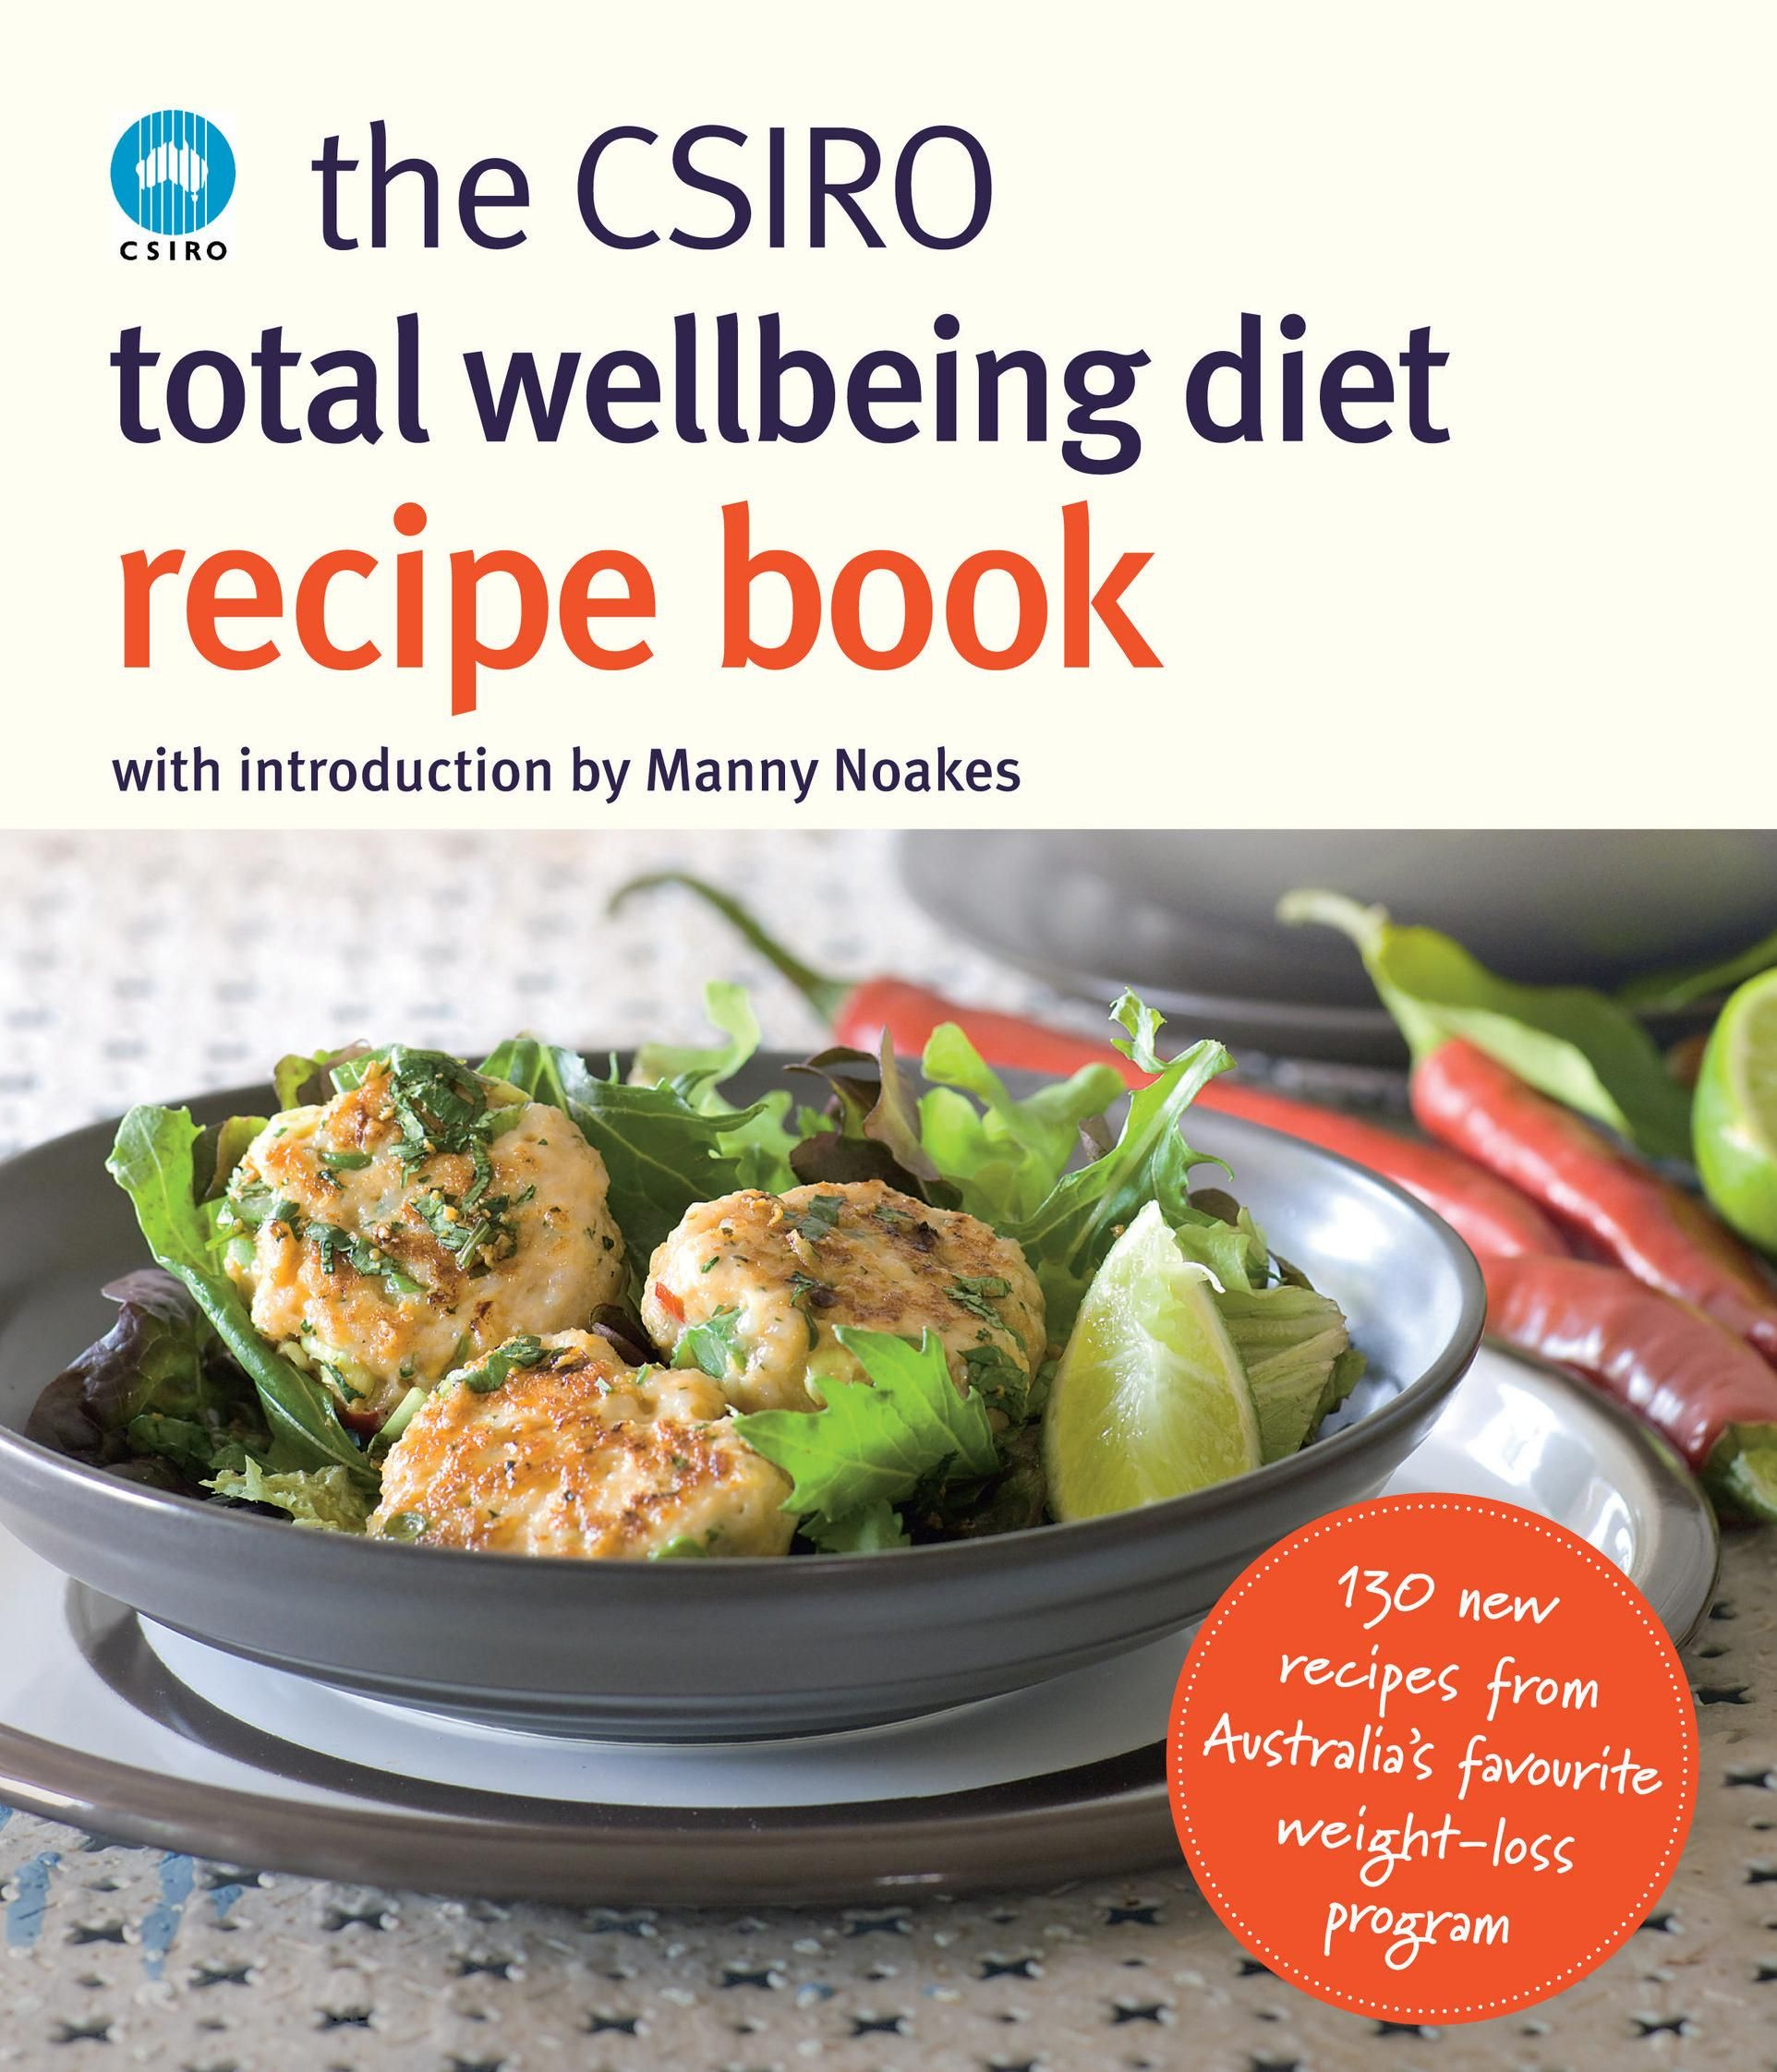 The csiro total wellbeing diet recipe book diet pinterest food the csiro total wellbeing diet recipe book forumfinder Choice Image